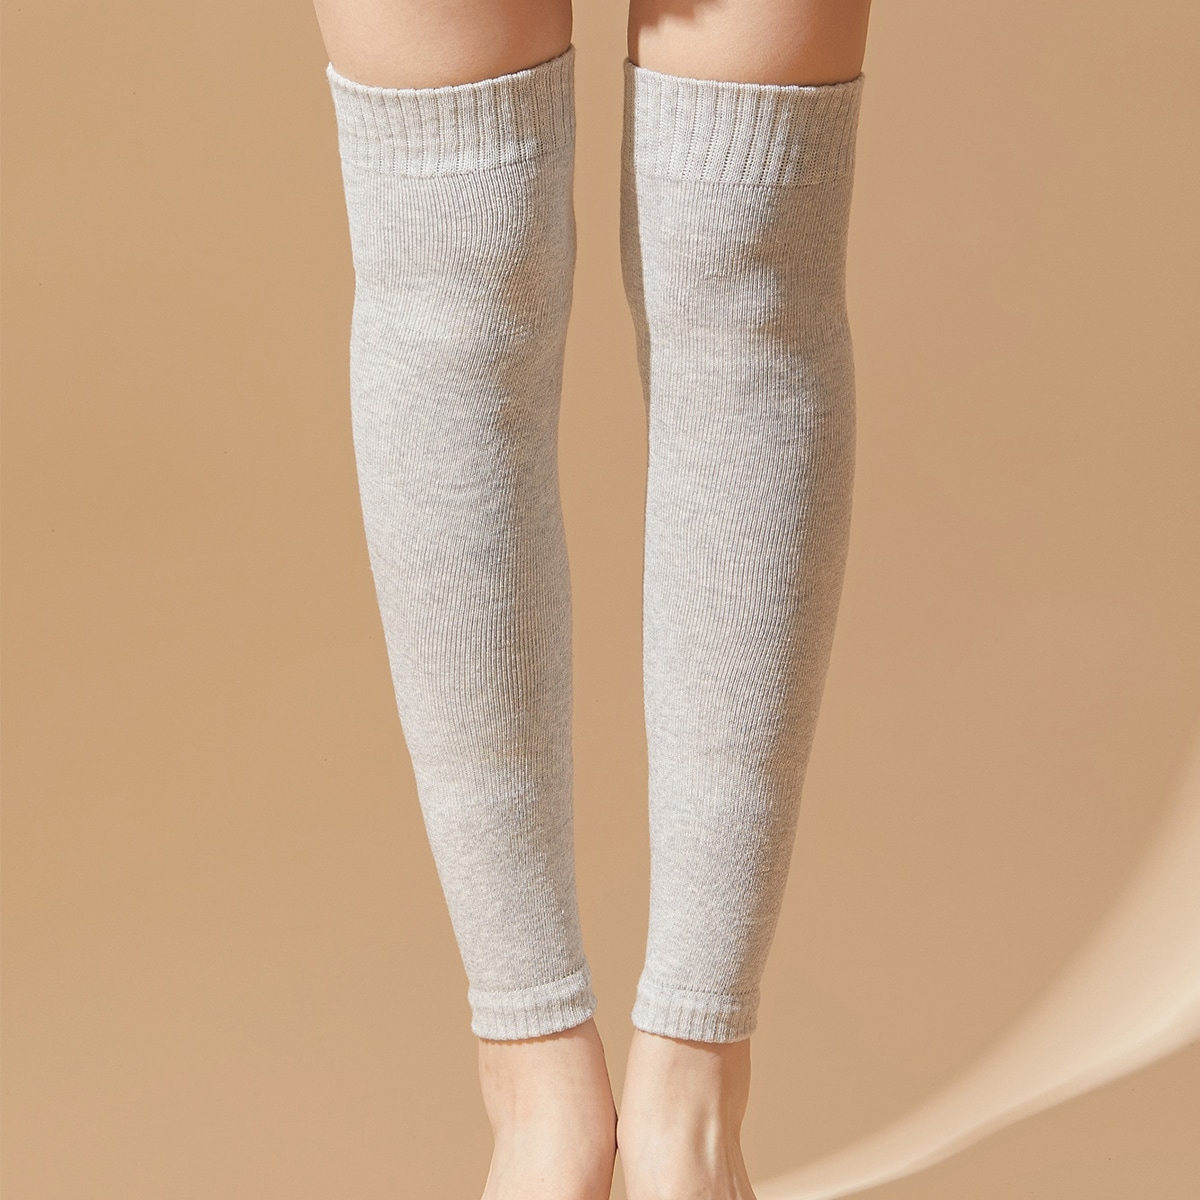 1pair Plain Over The Knee Leg Warmers